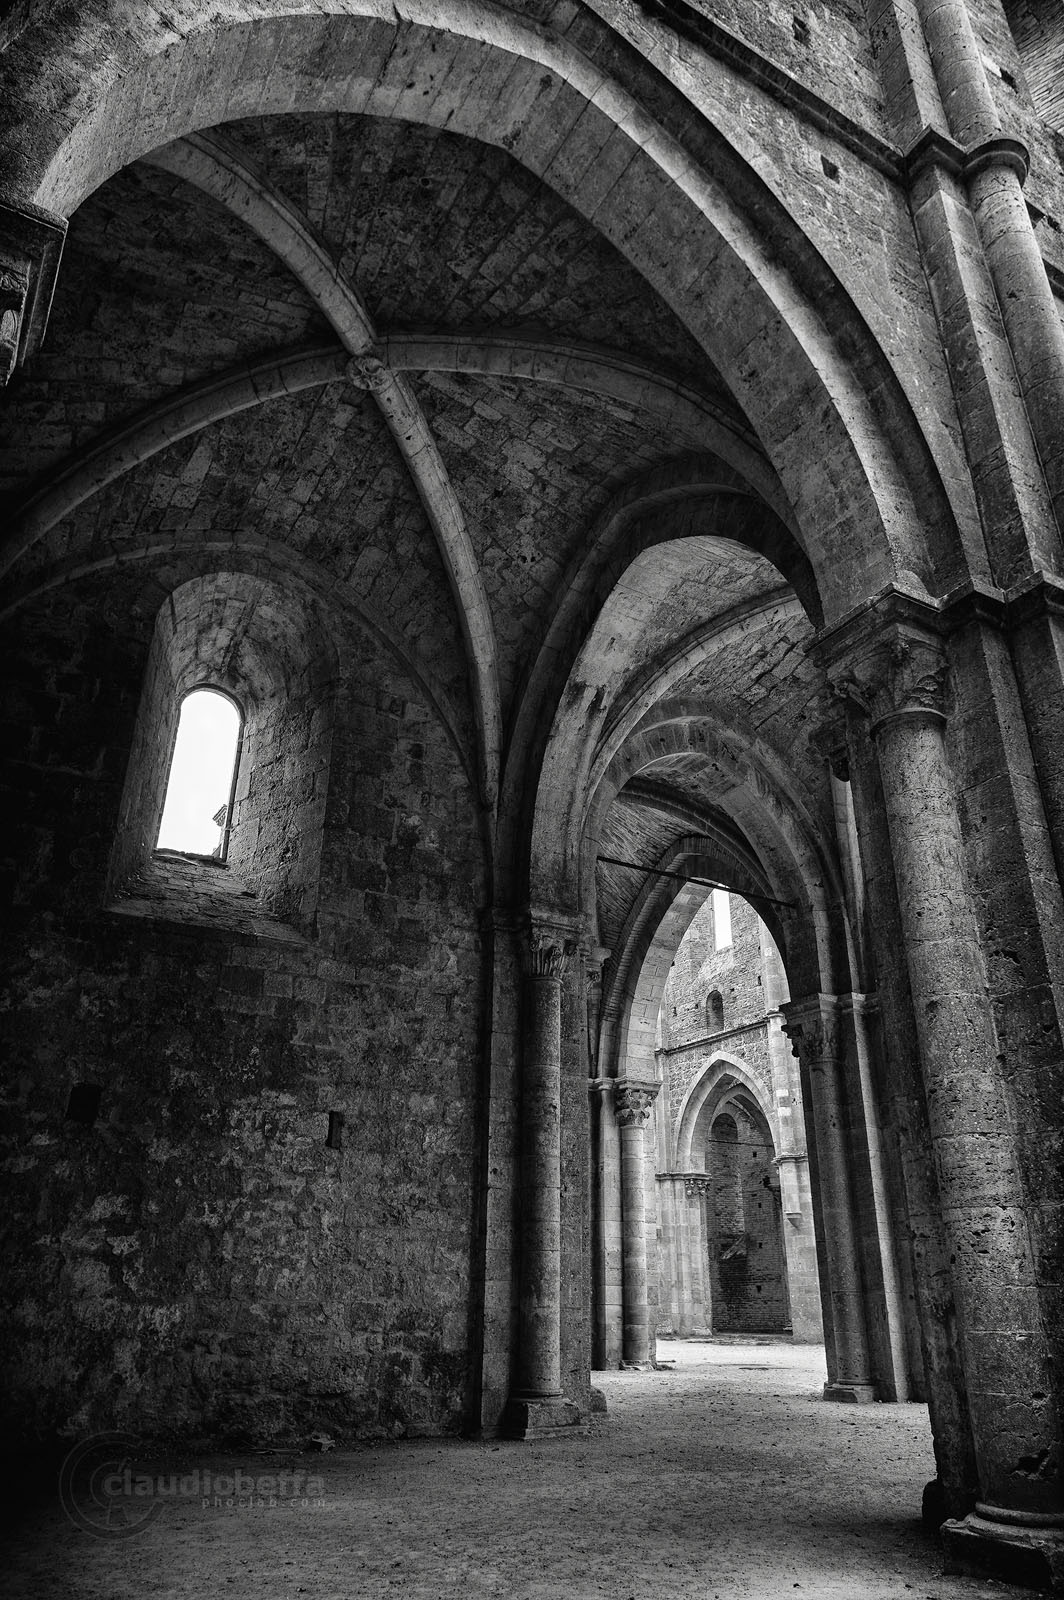 San Galgano, Abbey, Nave, Windows, Layers, Light, Shadows, Capitals, Arches, Ruin, Tuscany, Italy, Nature, History, Architecture, abbey of san galgano